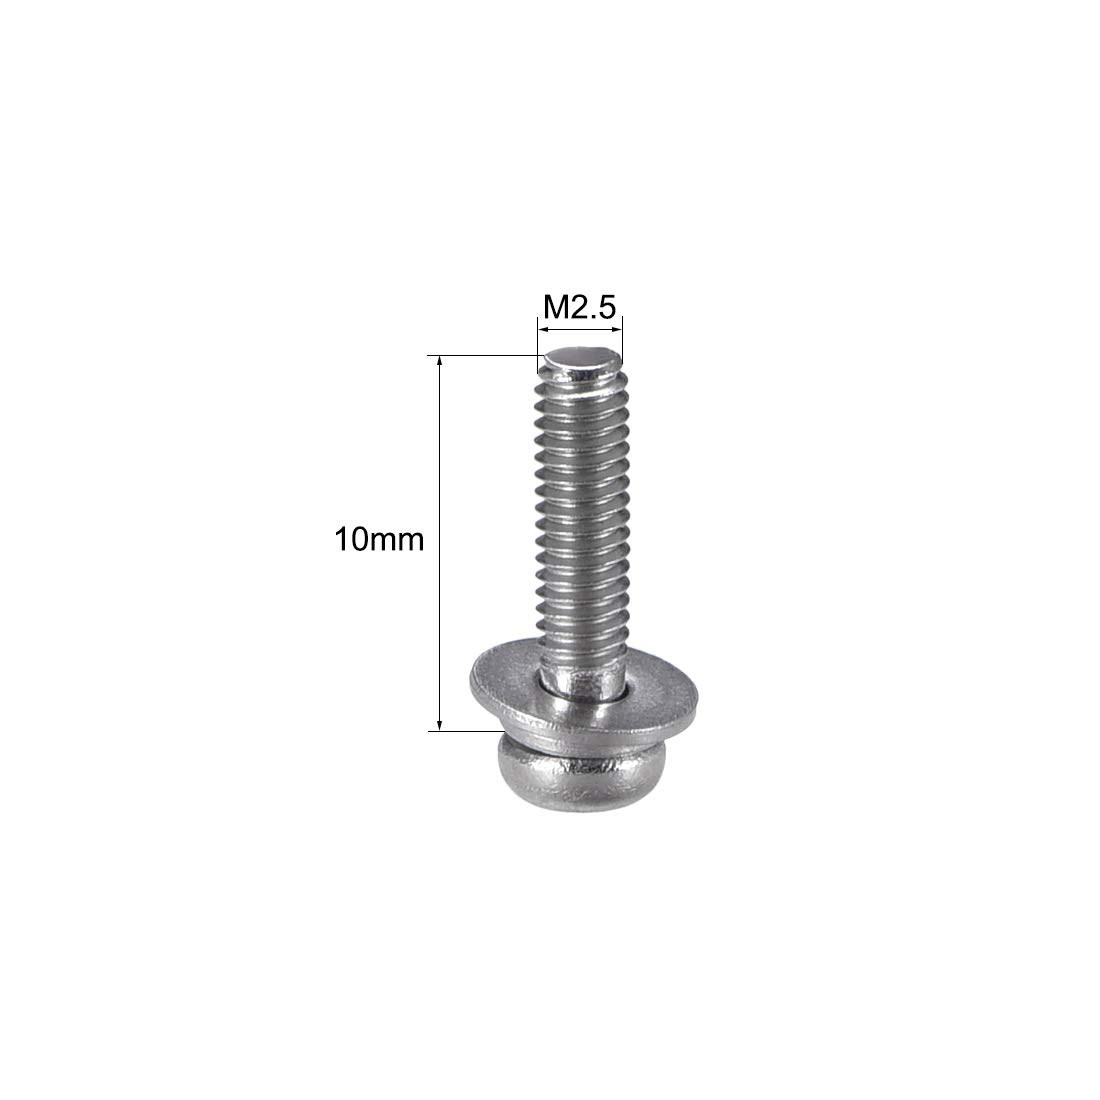 uxcell M3 x 12mm 304 Stainless Steel Phillips Pan Head Machine Screws Bolts Combine with Spring Washer and Plain Washers 20pcs